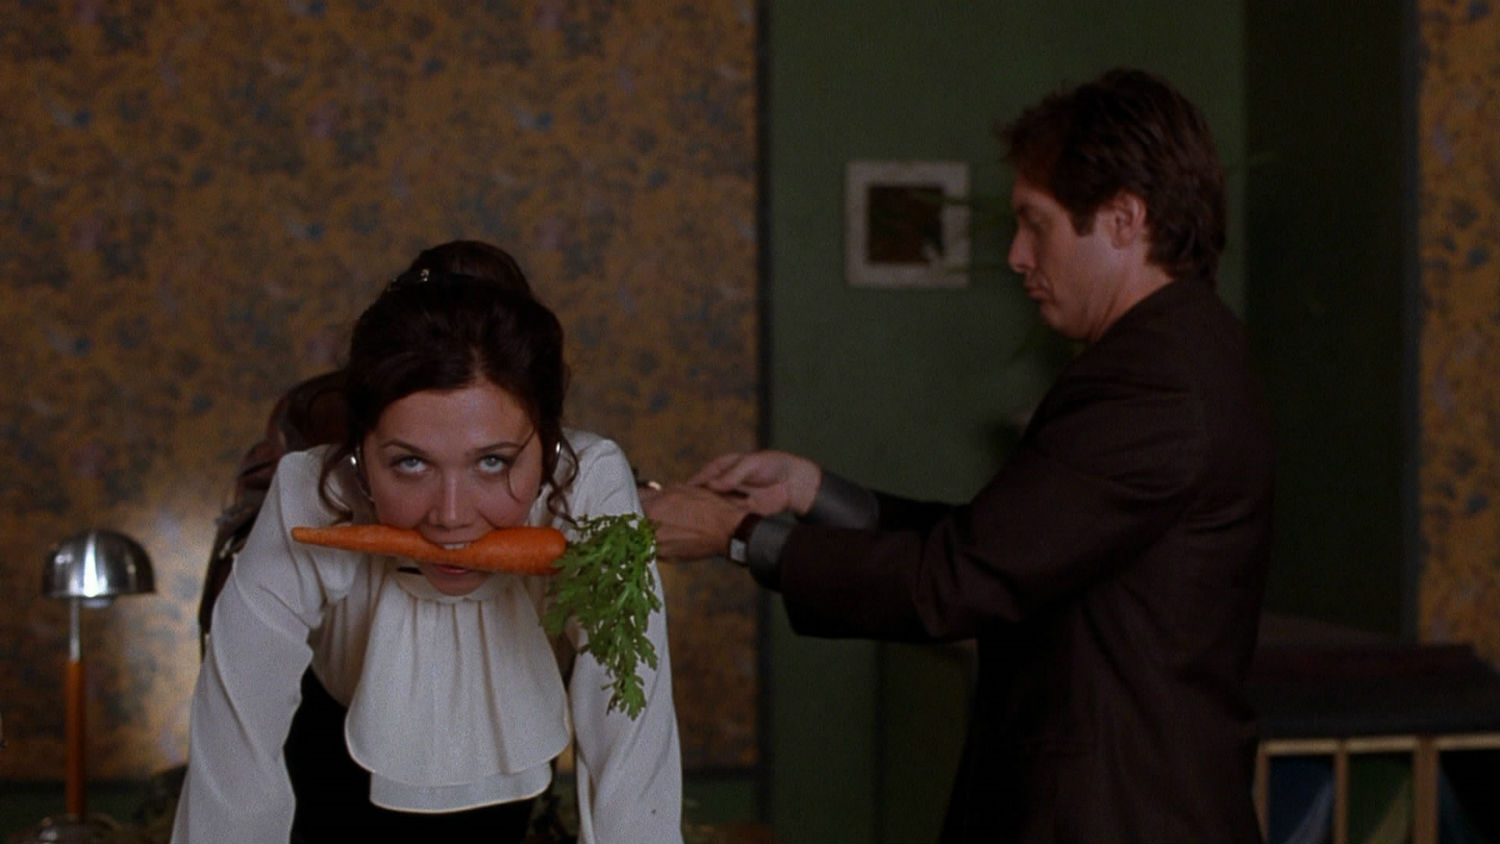 james spader carrot erotic movies secretary